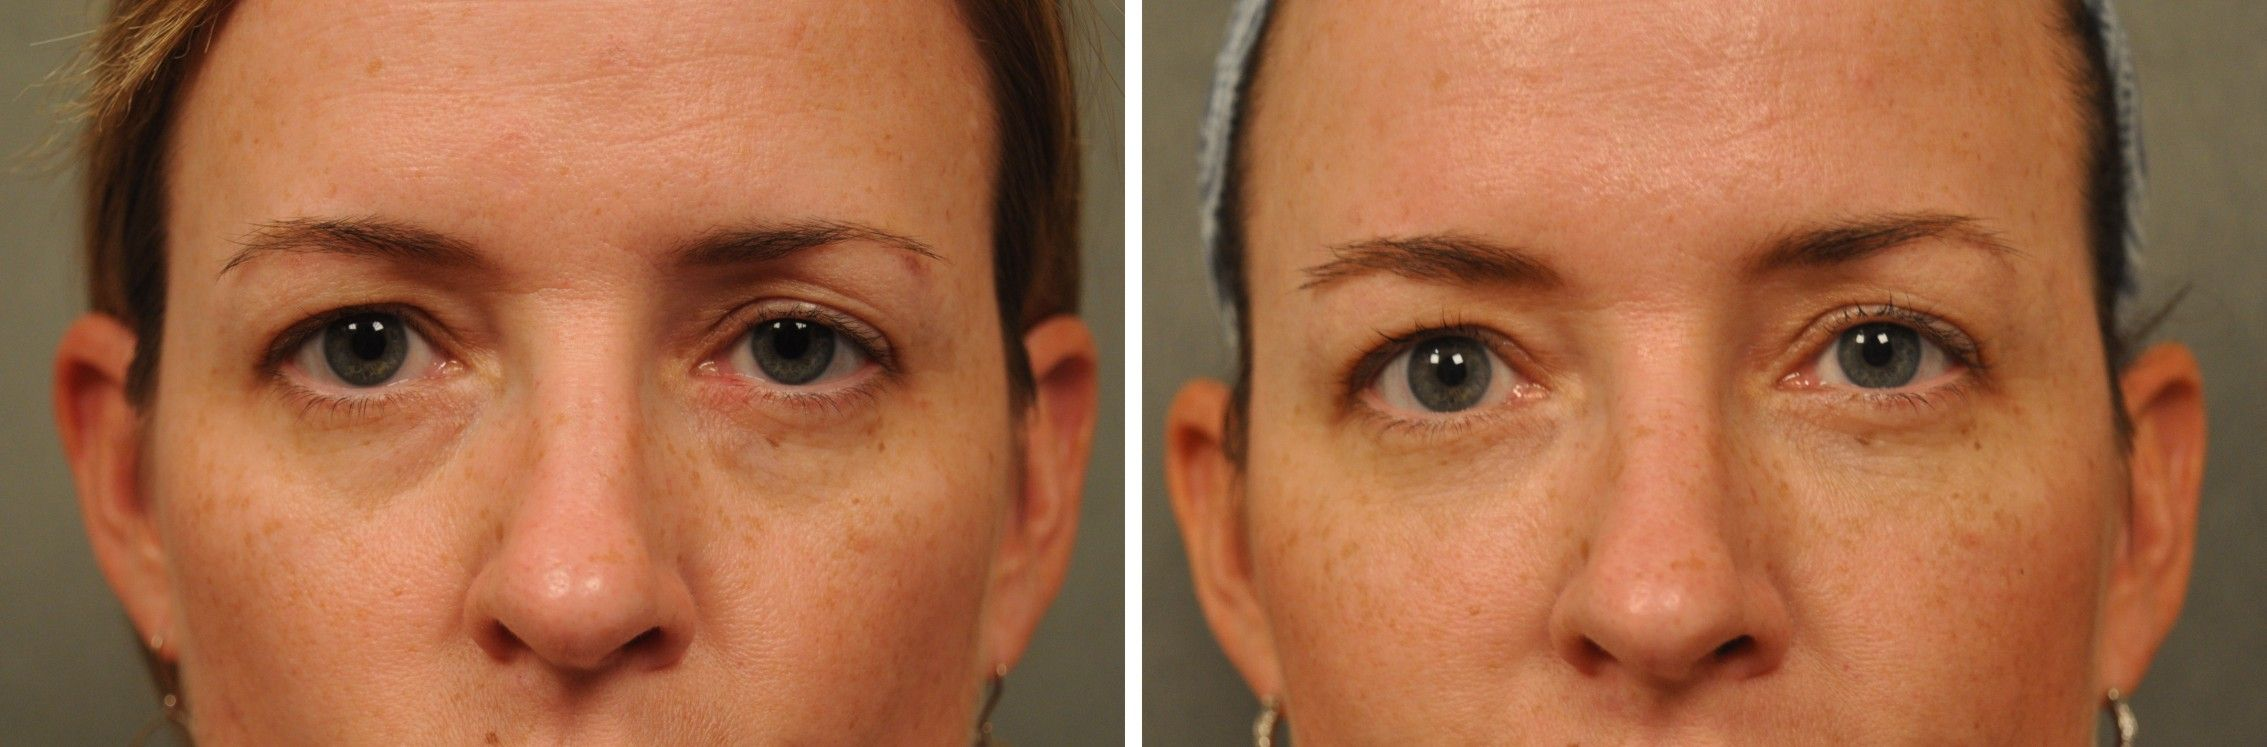 Tear Trough Surgery - Eye Fillers in San Diego | Changes